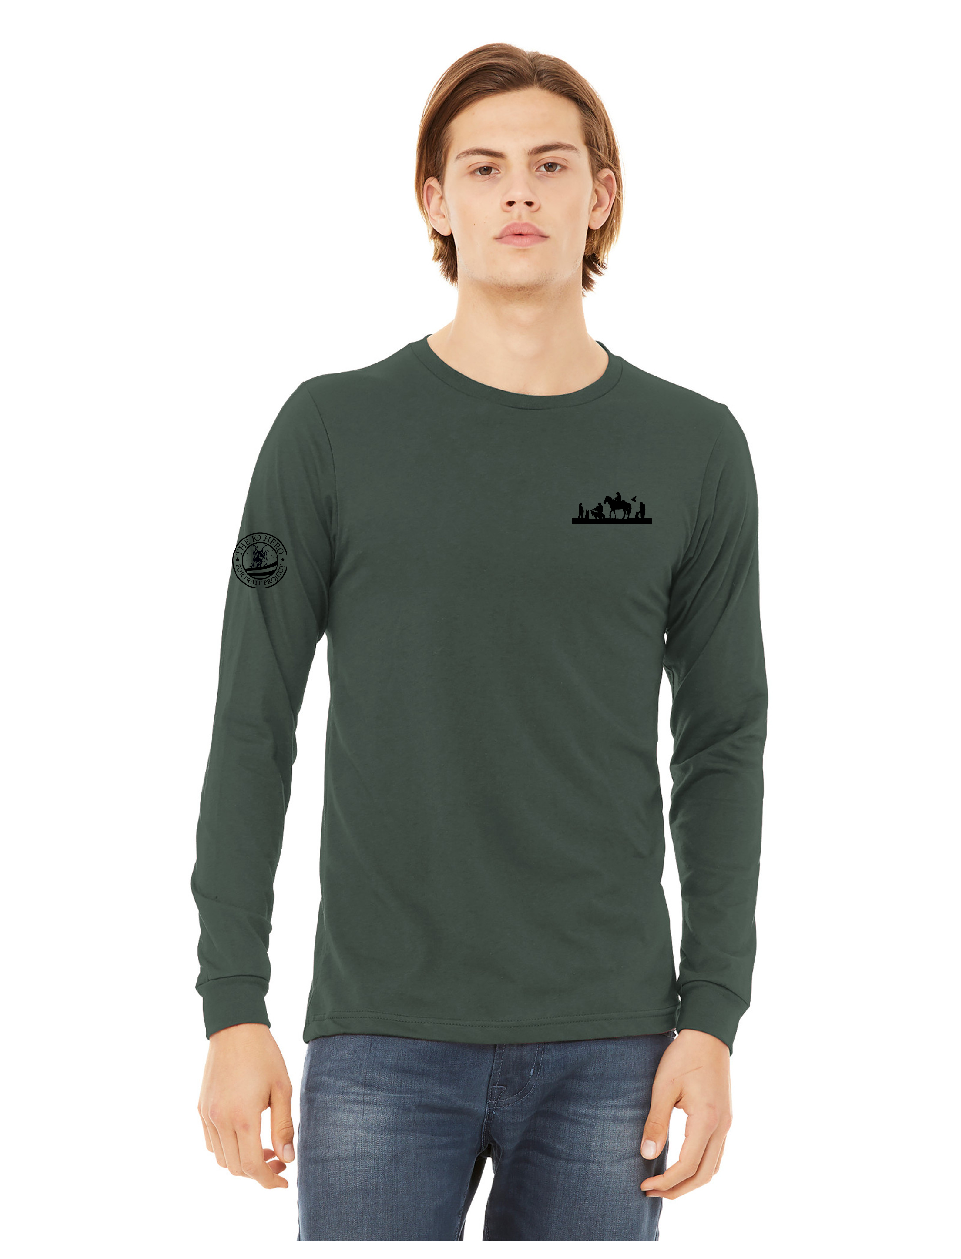 Military Green front K9HPP - K9 Heroes Painted Jersey Long Sleeve Tee